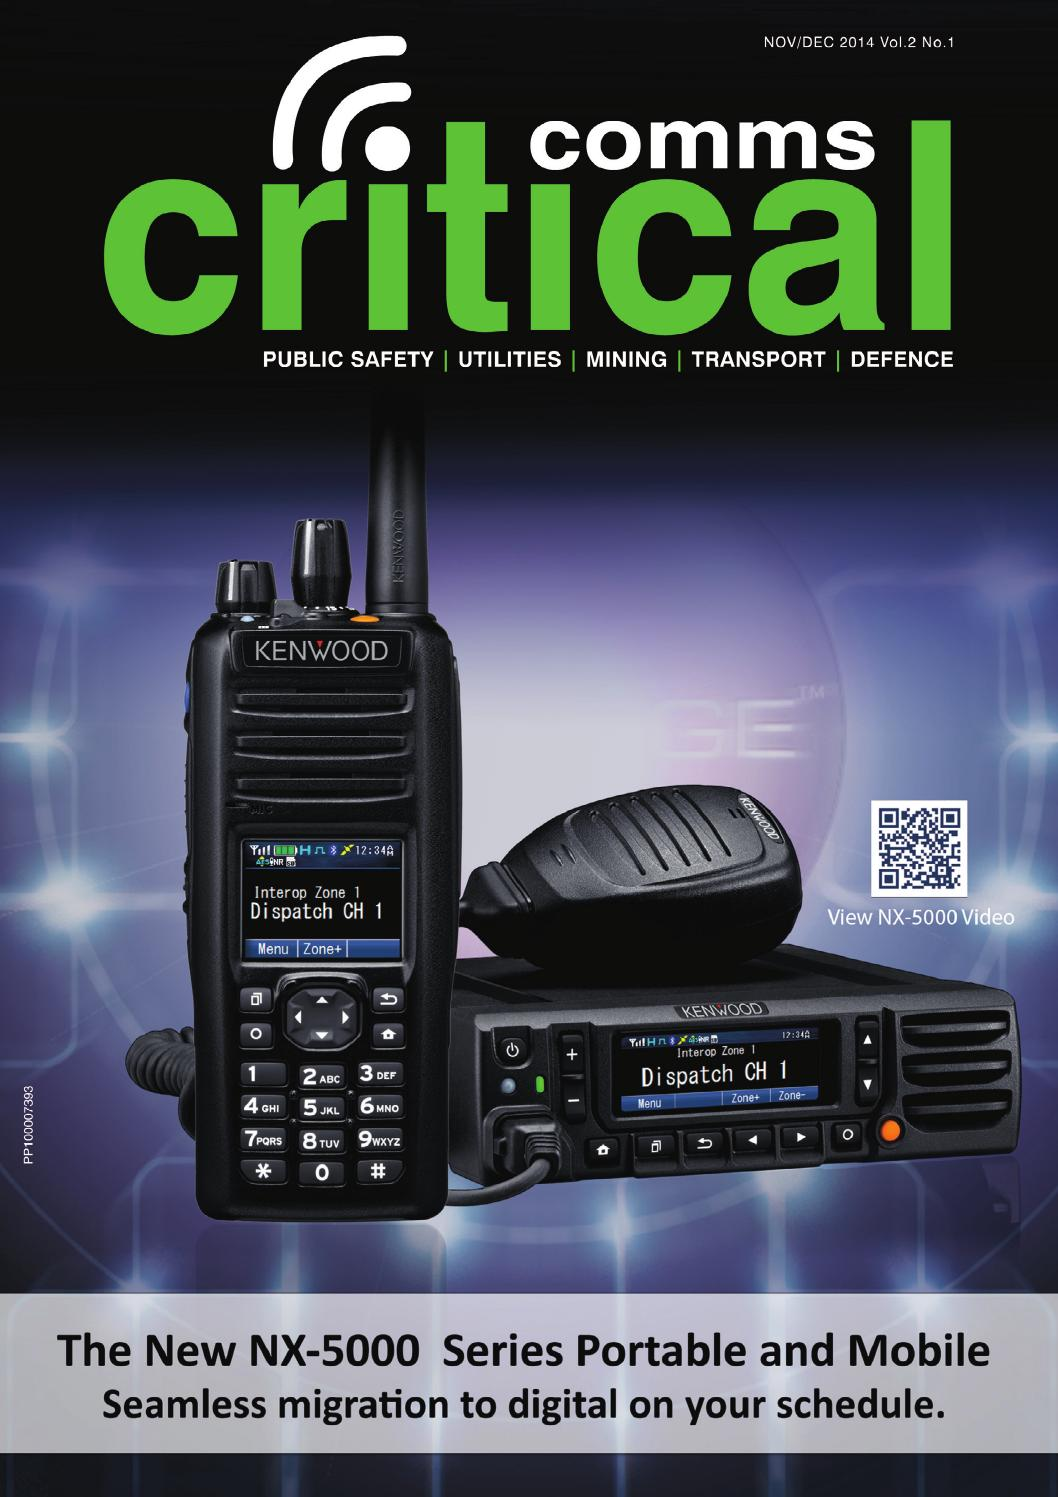 Critical Comms Nov Dec 2014 By Westwick Farrow Media Issuu The Usb Router Repeater Is Made From Durable Cnc Aluminum It39s Nearly